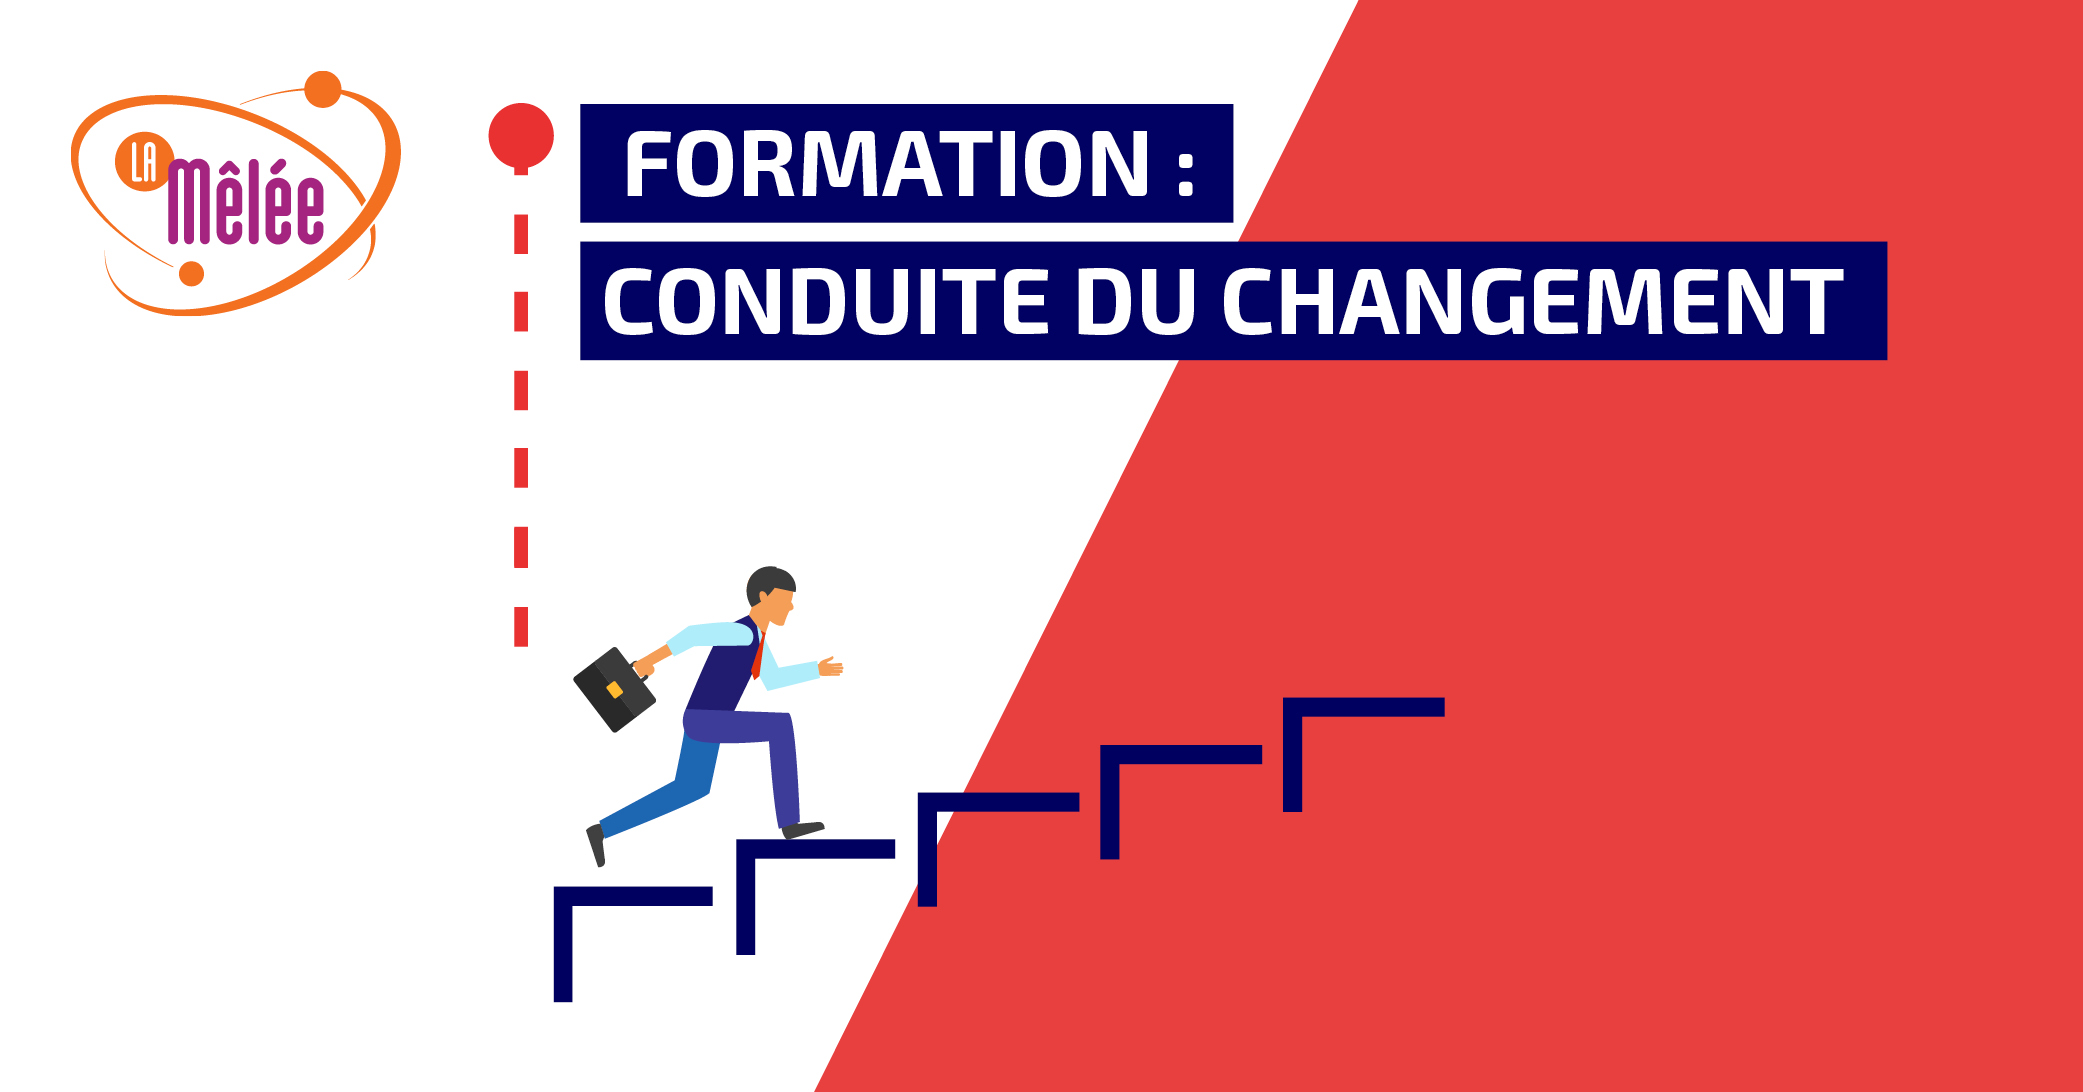 1572349452-formationconduiteduchangement.jpg